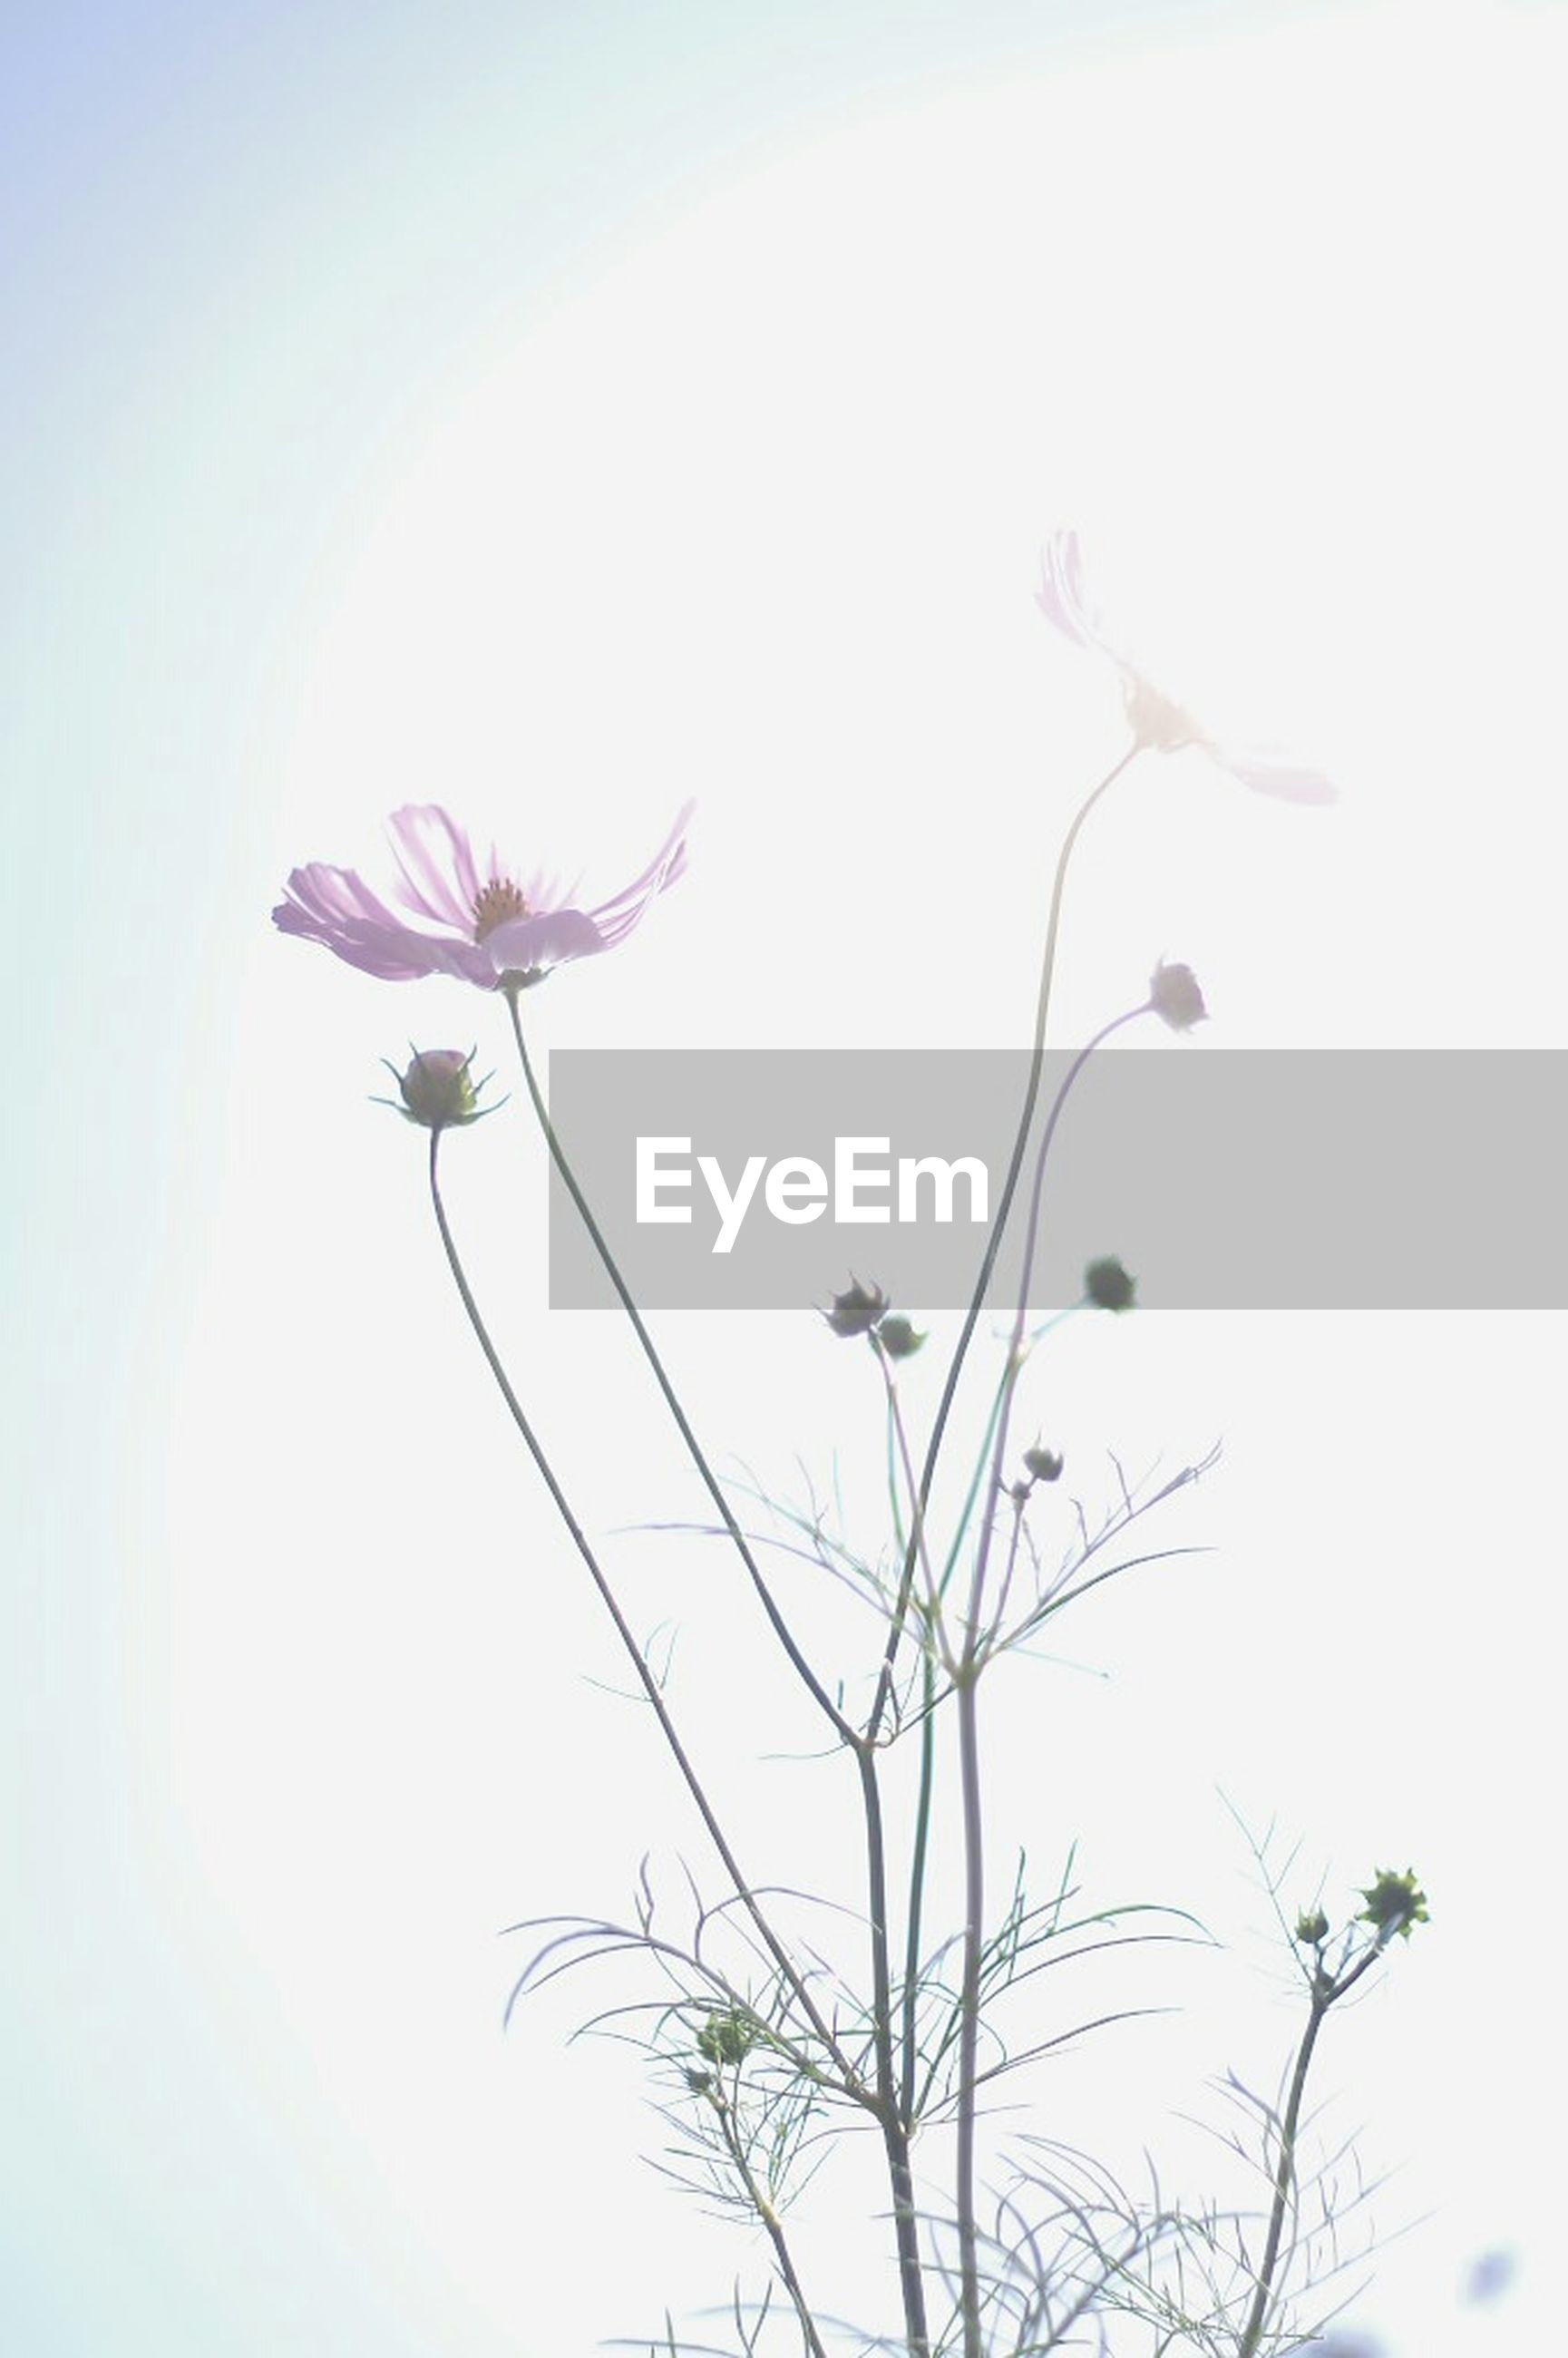 flower, freshness, fragility, growth, petal, low angle view, beauty in nature, stem, nature, flower head, clear sky, blooming, plant, in bloom, blossom, sky, copy space, close-up, springtime, bud